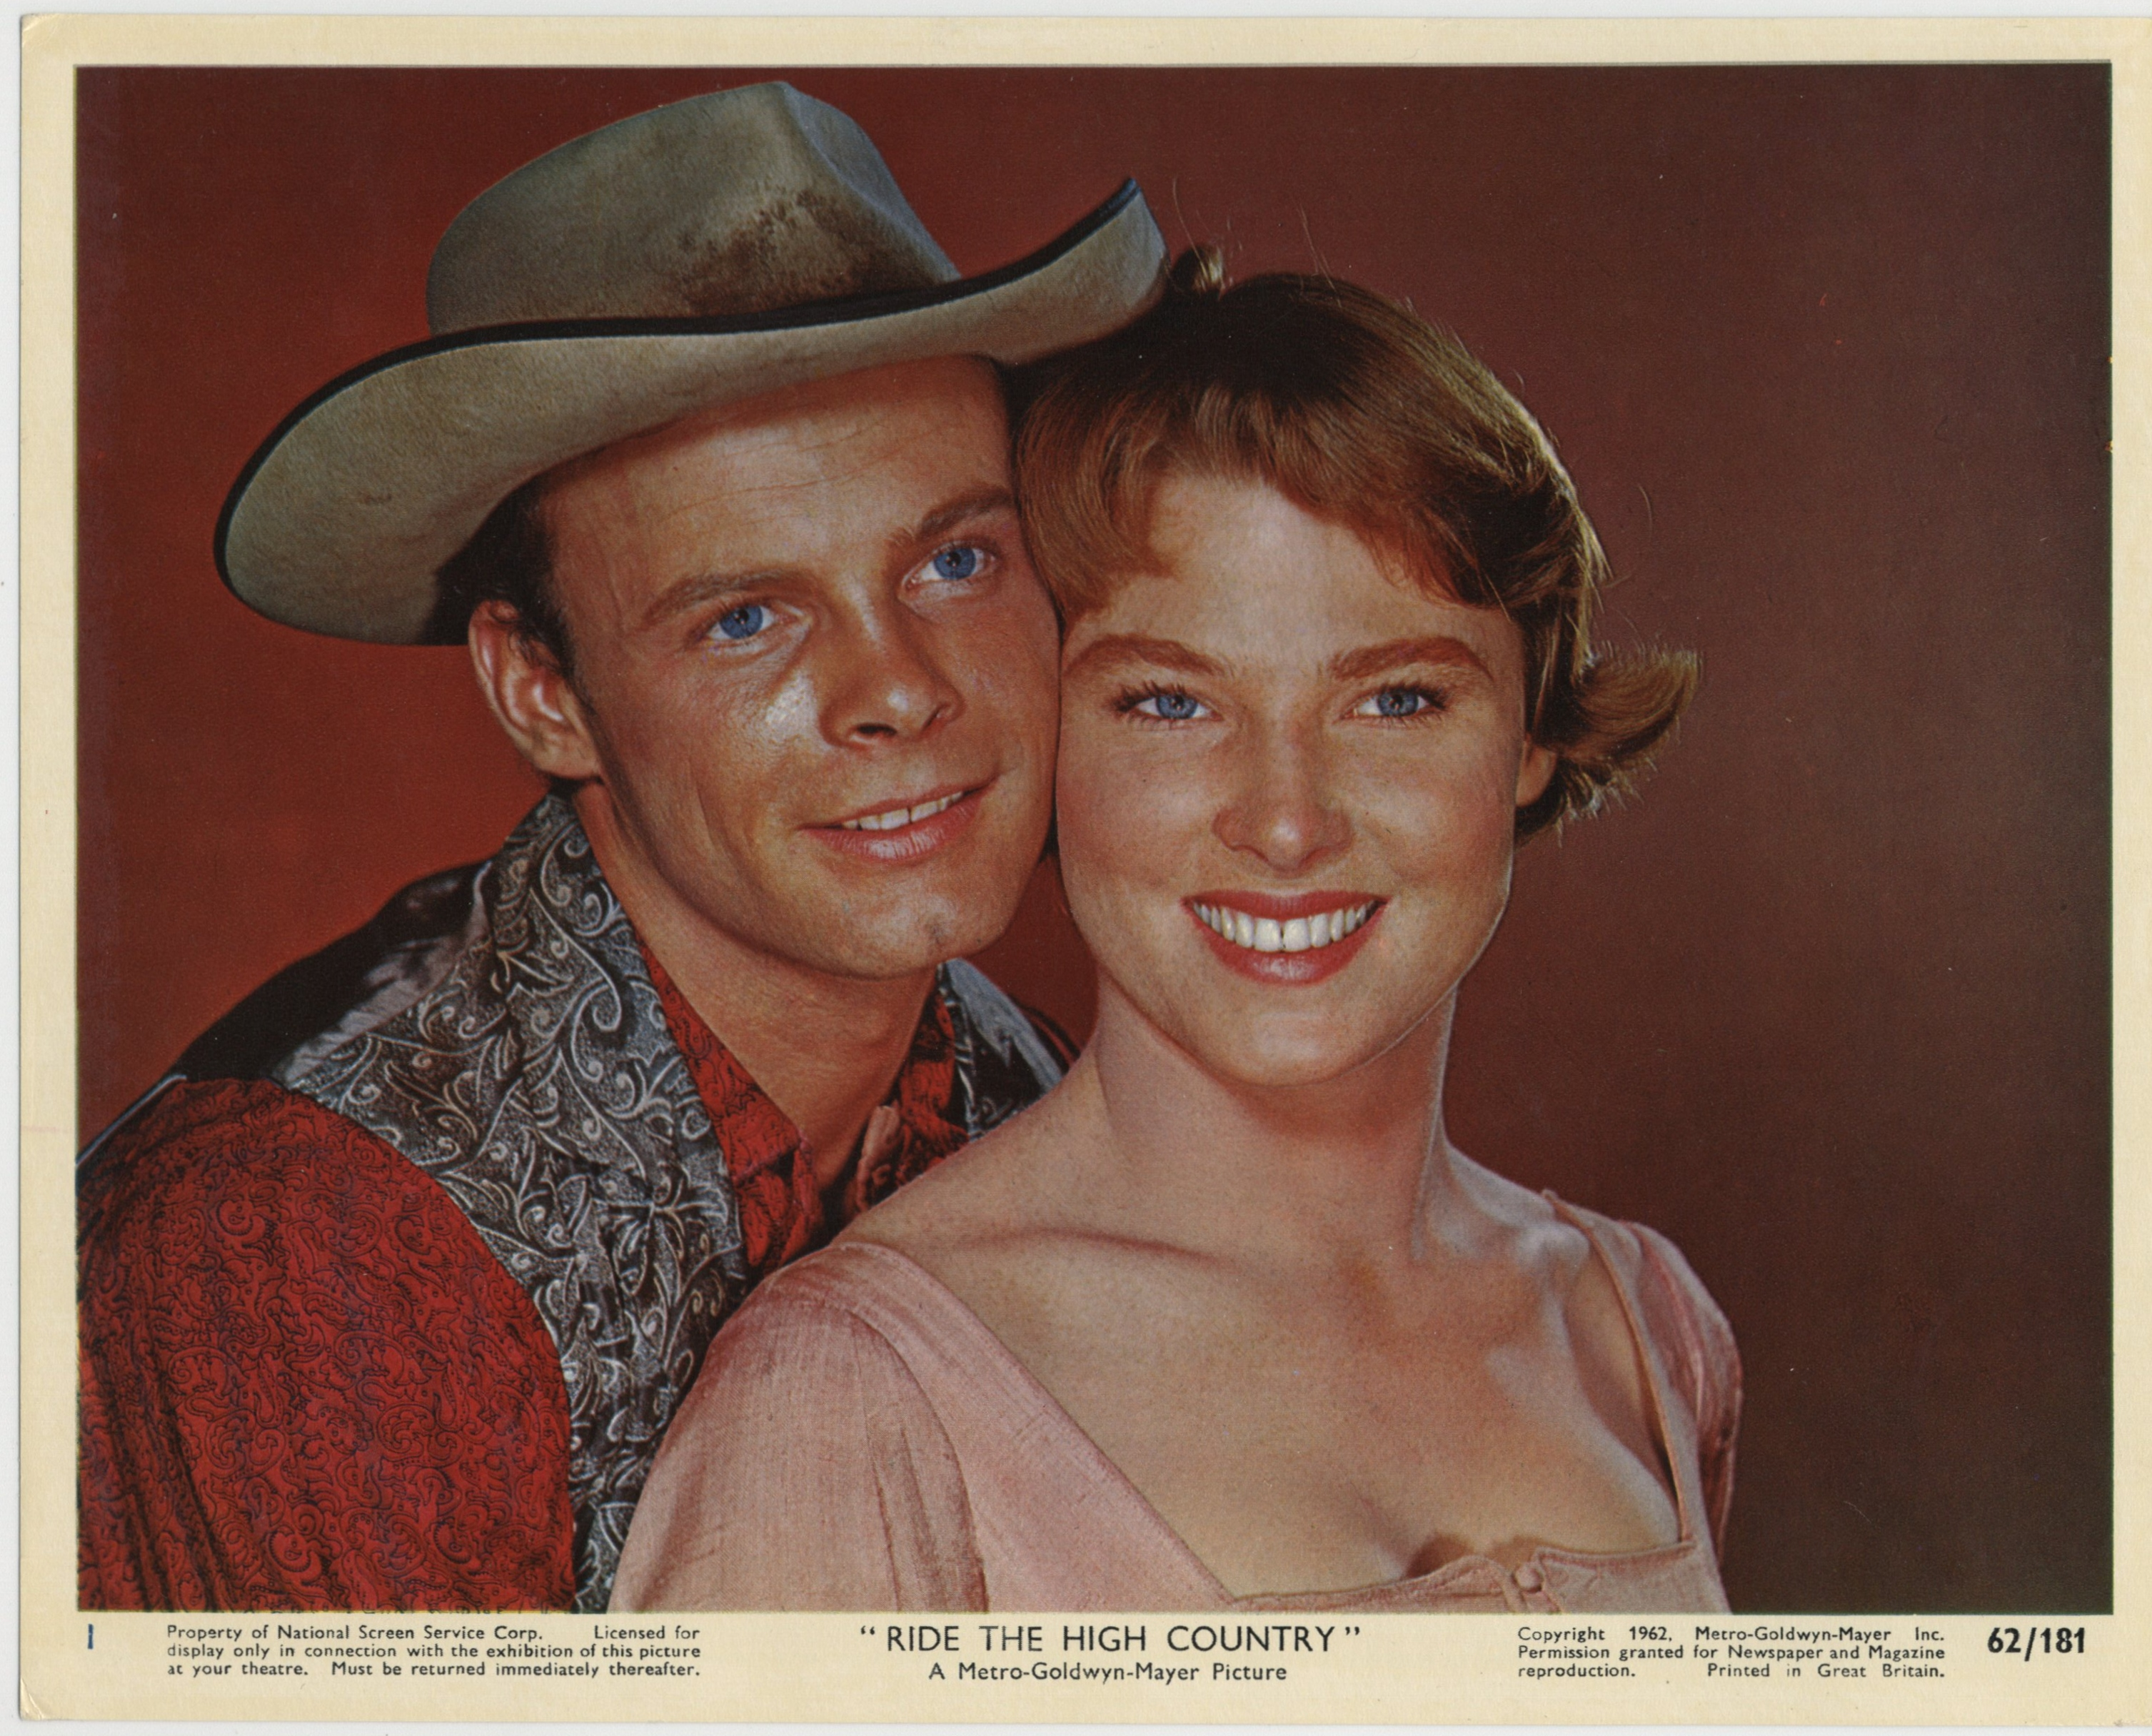 Mariette Hartley and Ron Starr in Ride the High Country (1962)